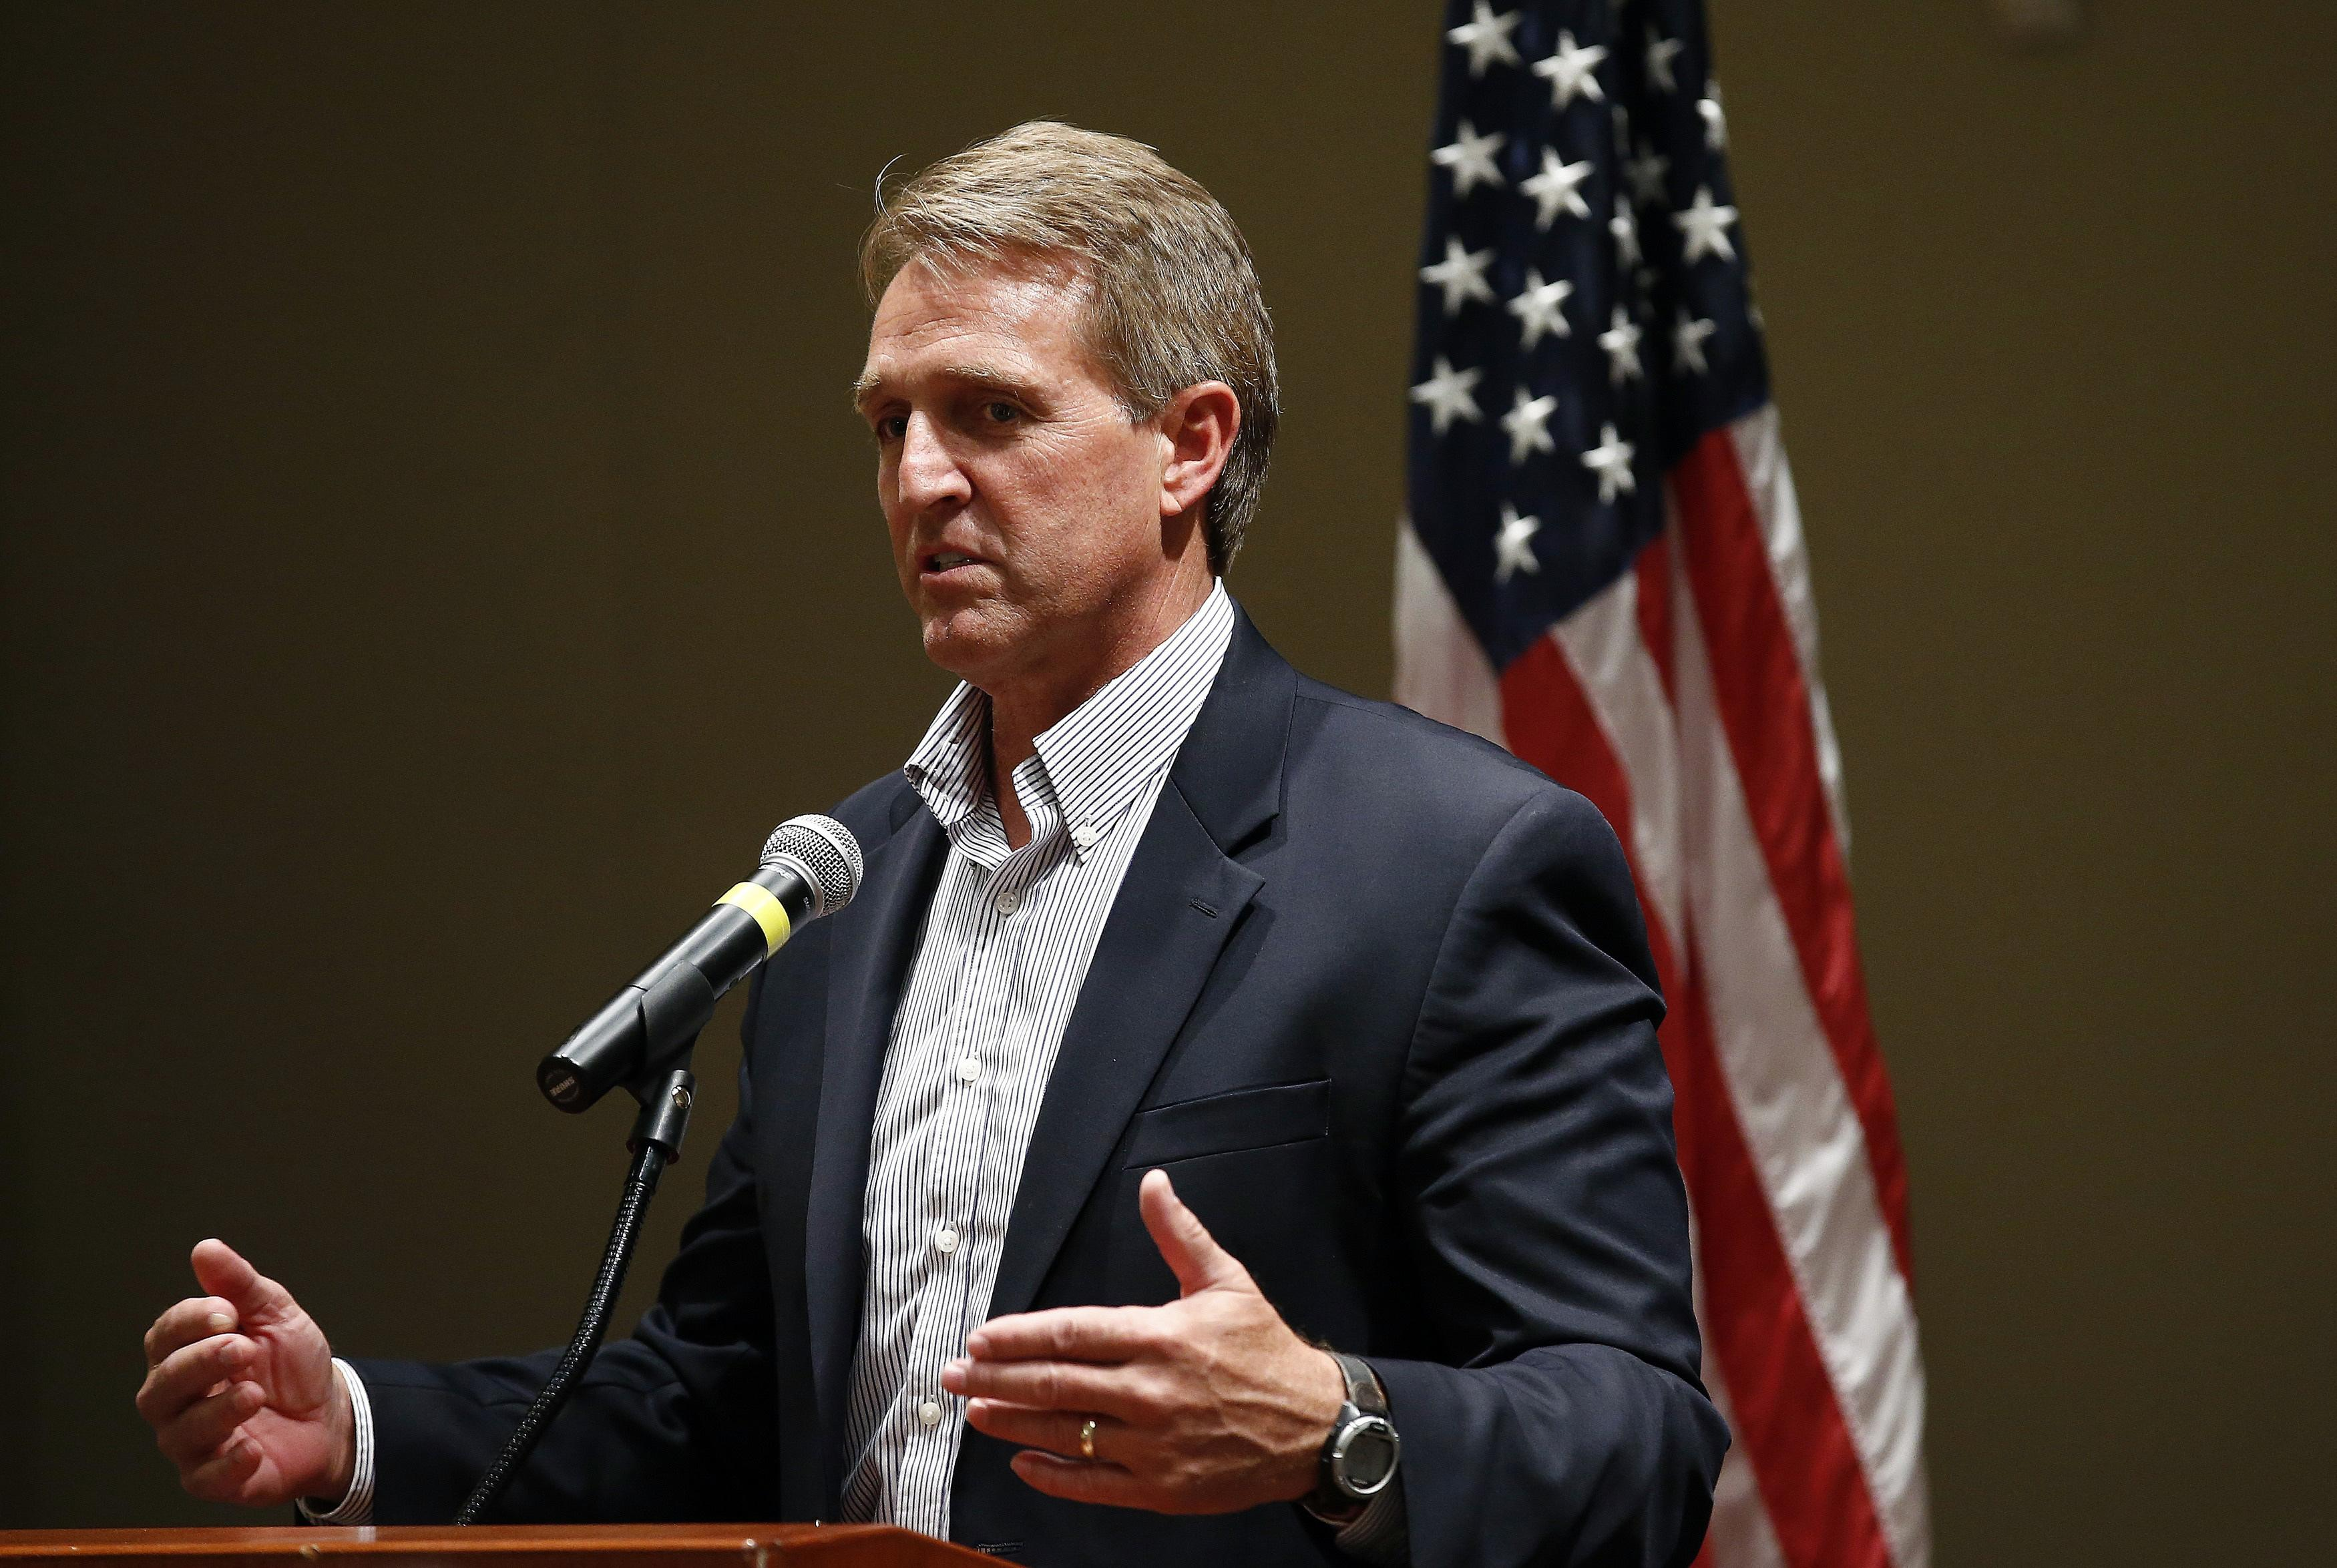 Sen. Jeff Flake says GOP should have stopped Trump's 'birther' push